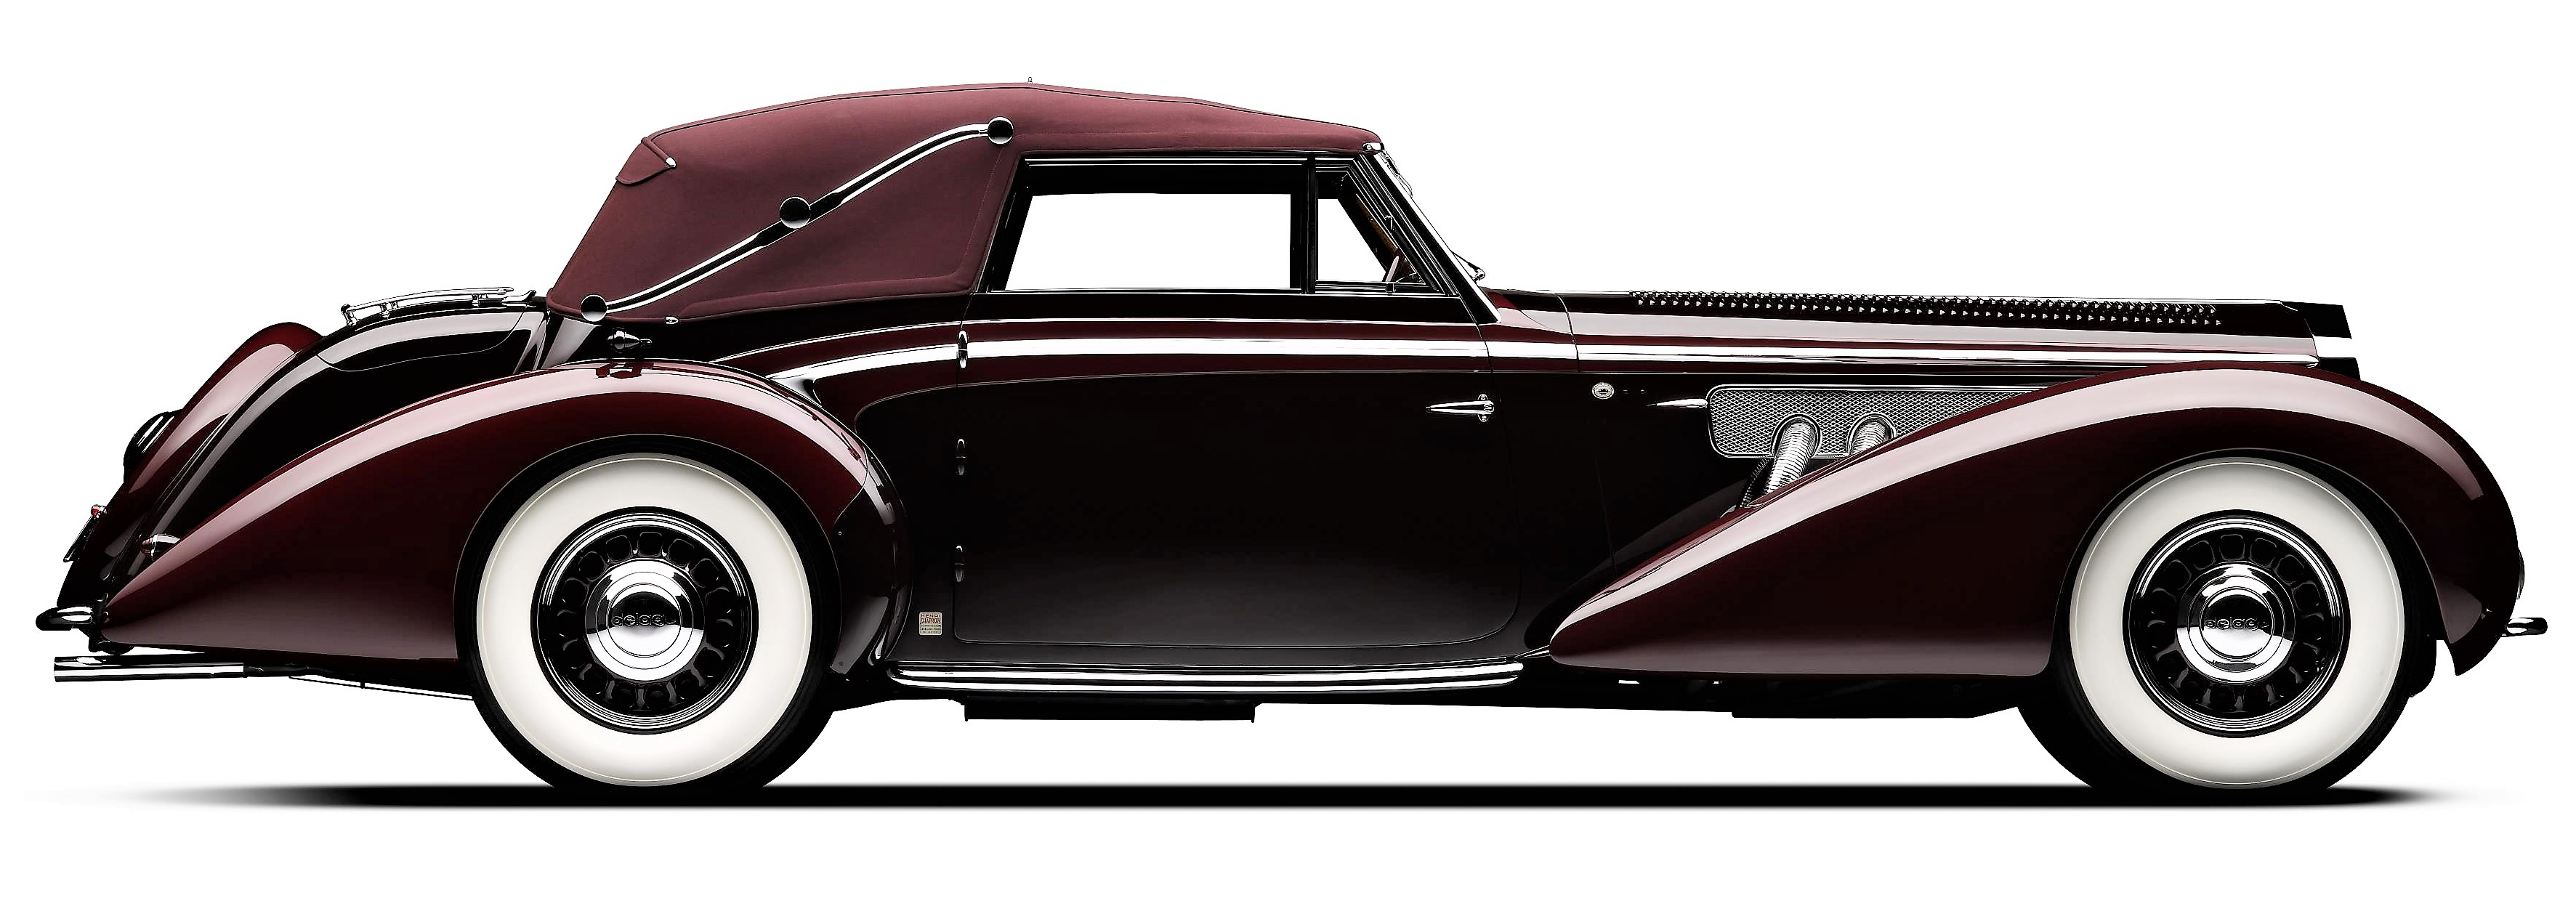 The historic 1939 Delage D8-120 Cabriolet |